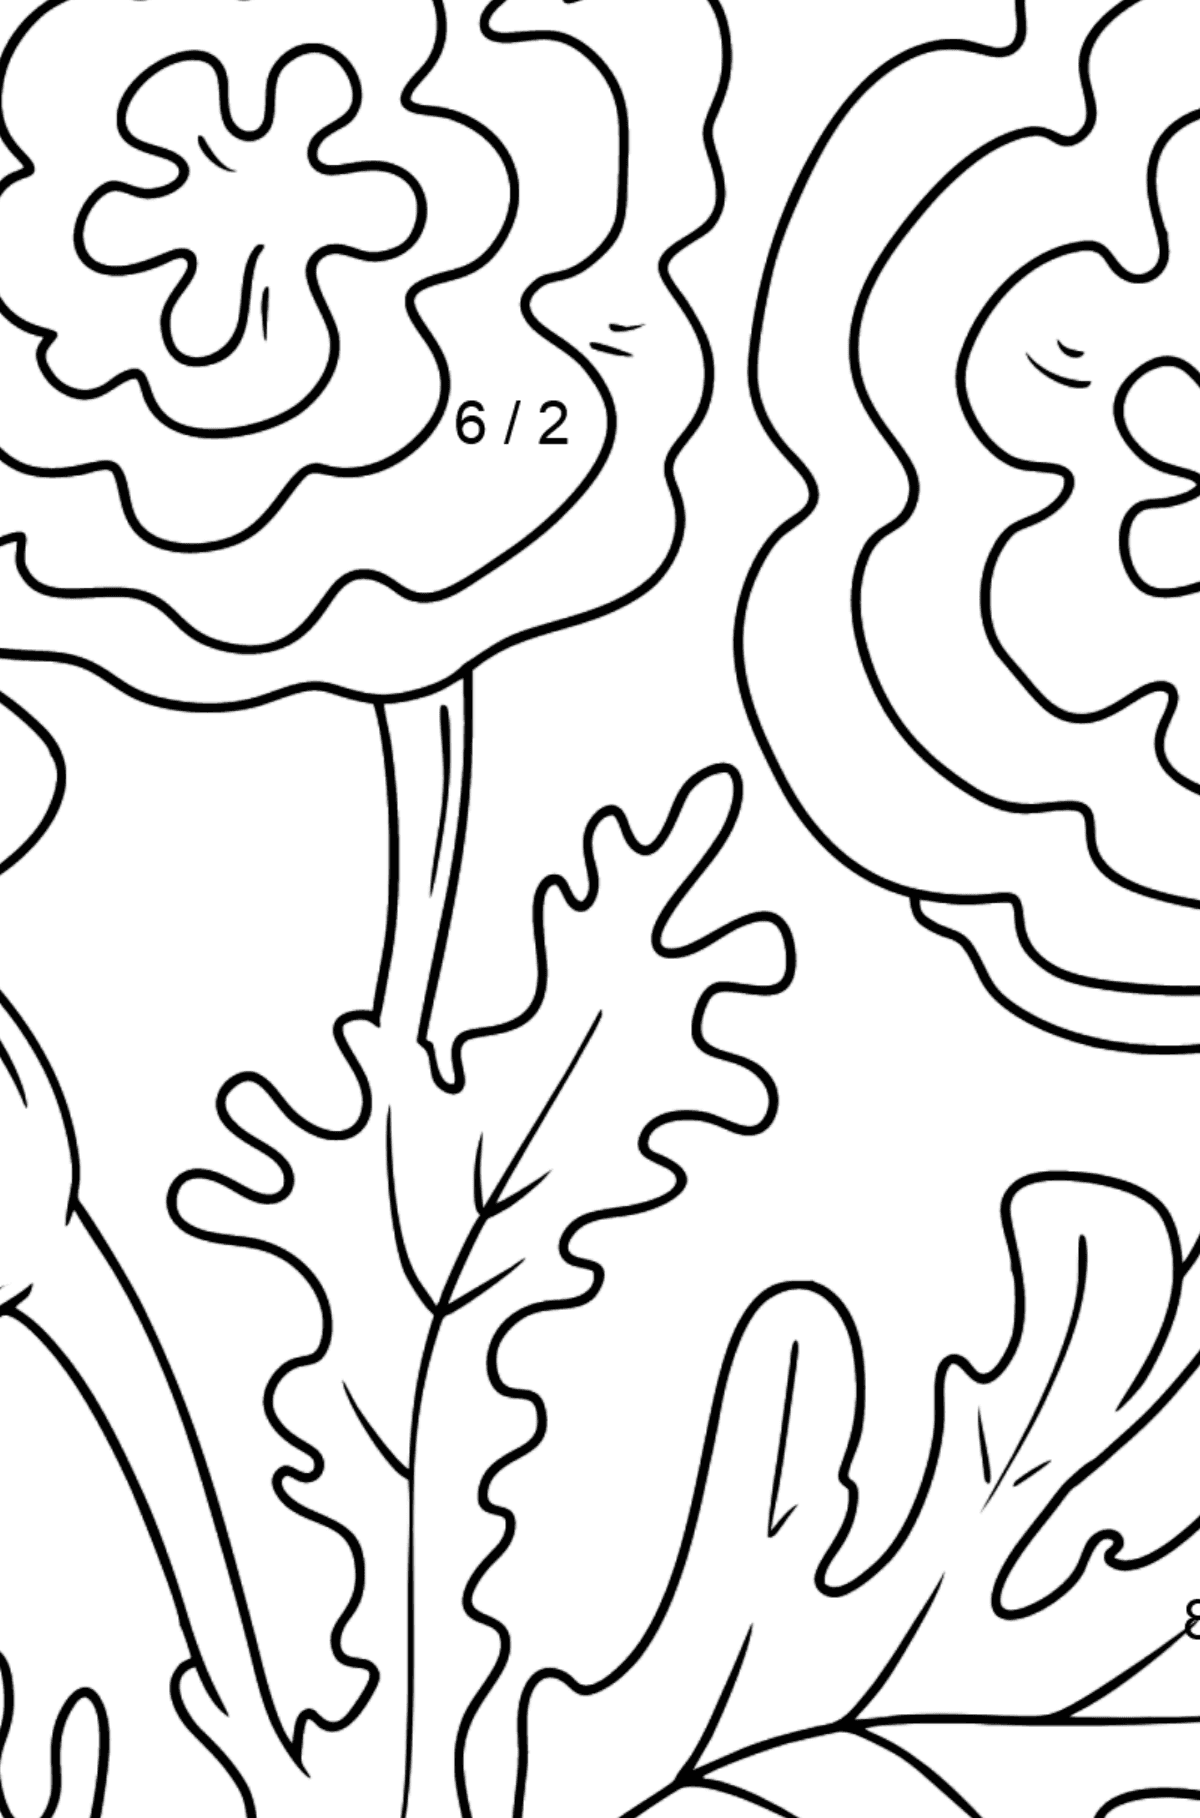 Coloring Page - Autumn flowers - Math Coloring - Division for Kids